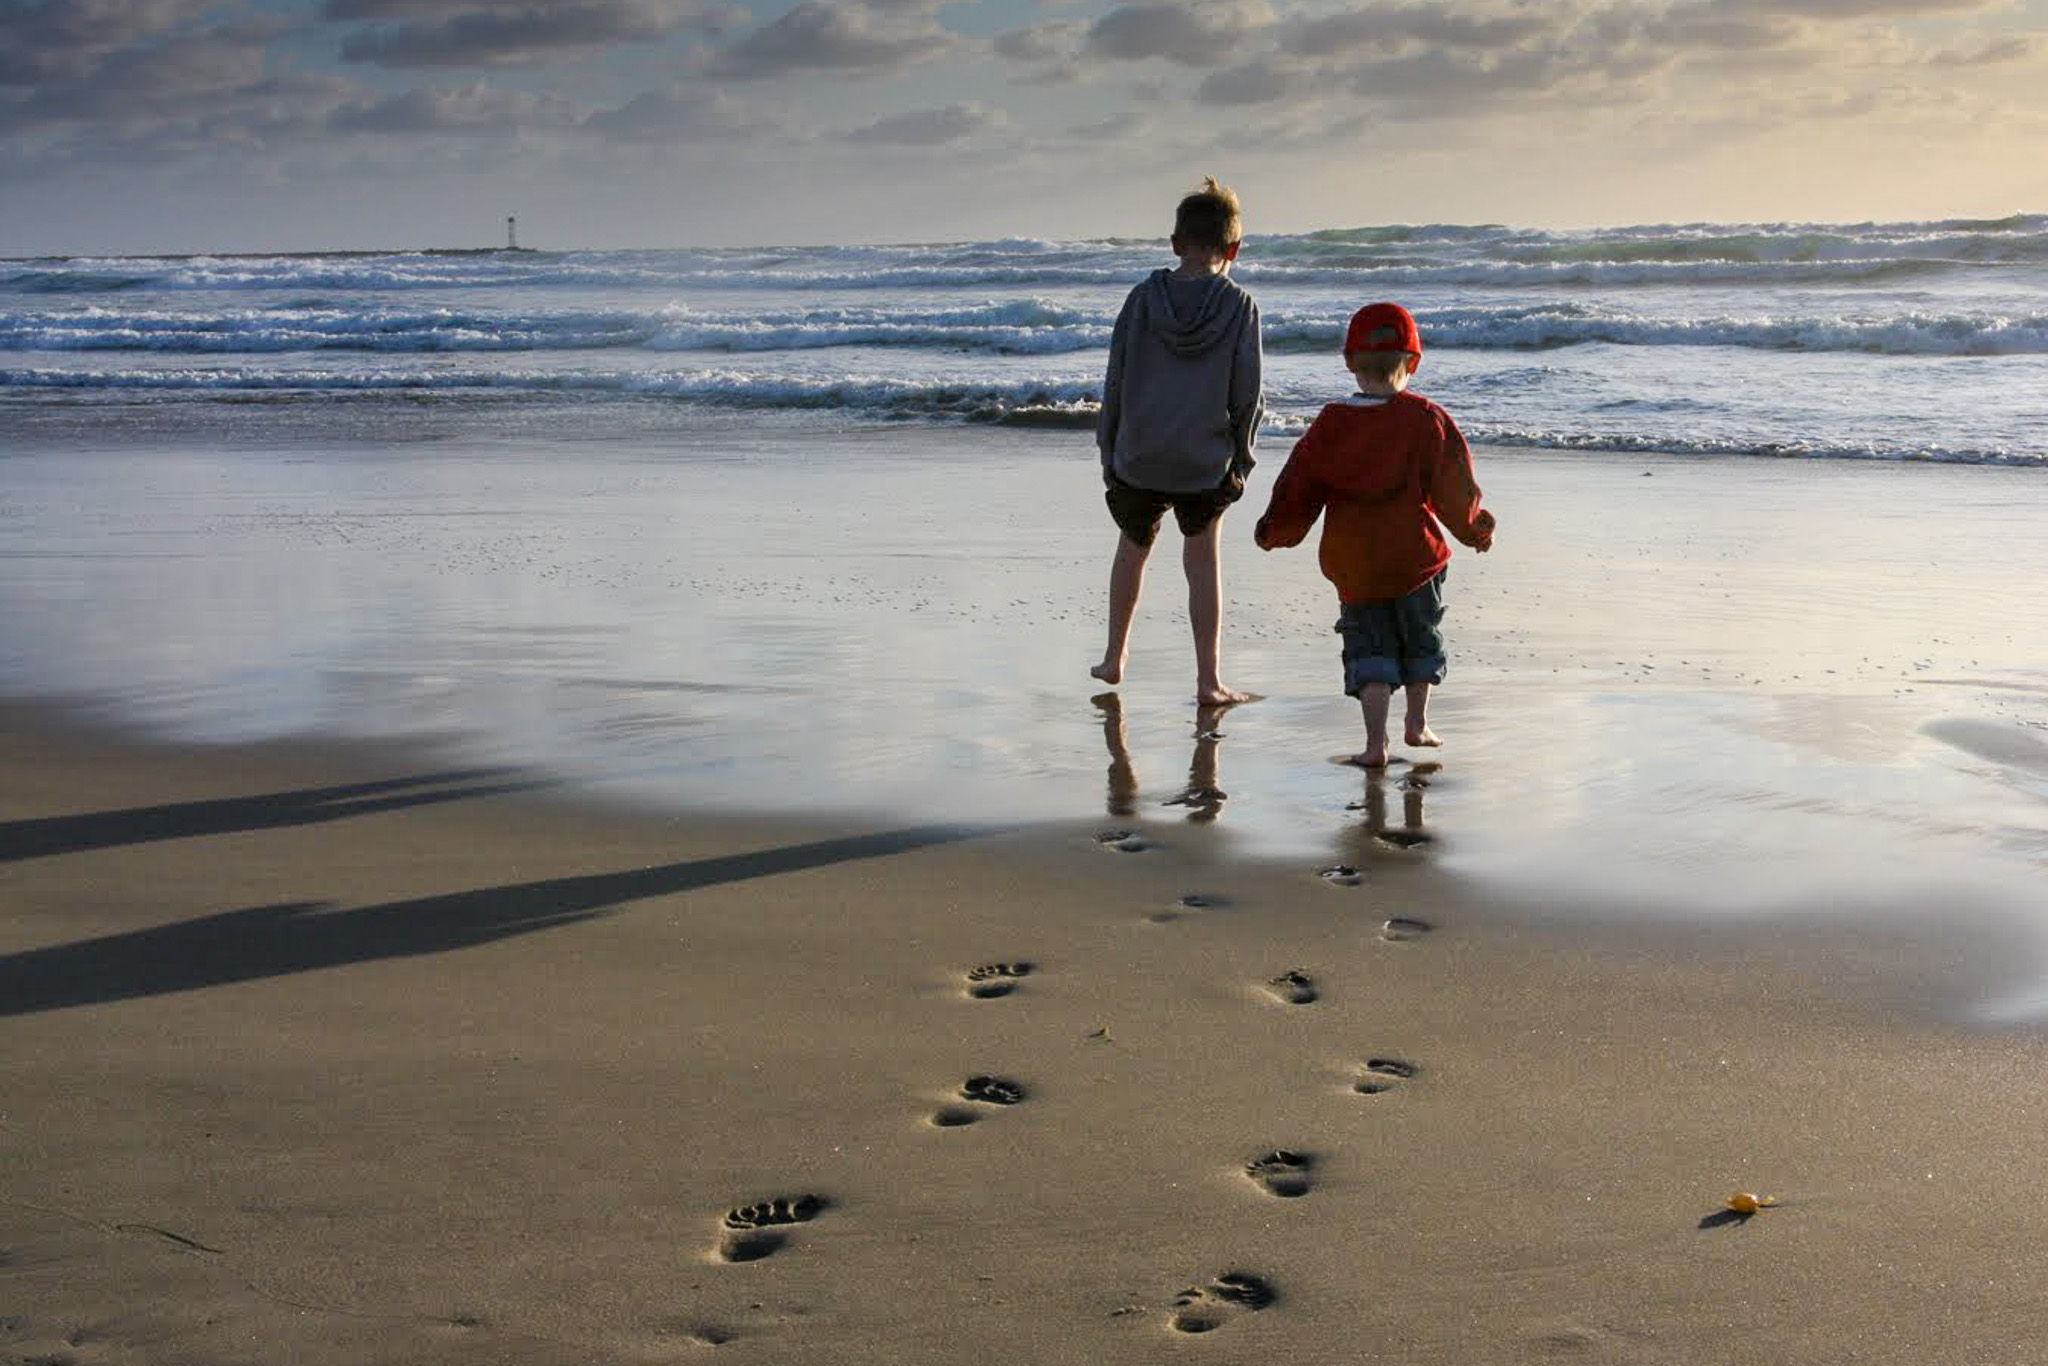 Footprints in the sand. Kids at the beach. San Diego, California